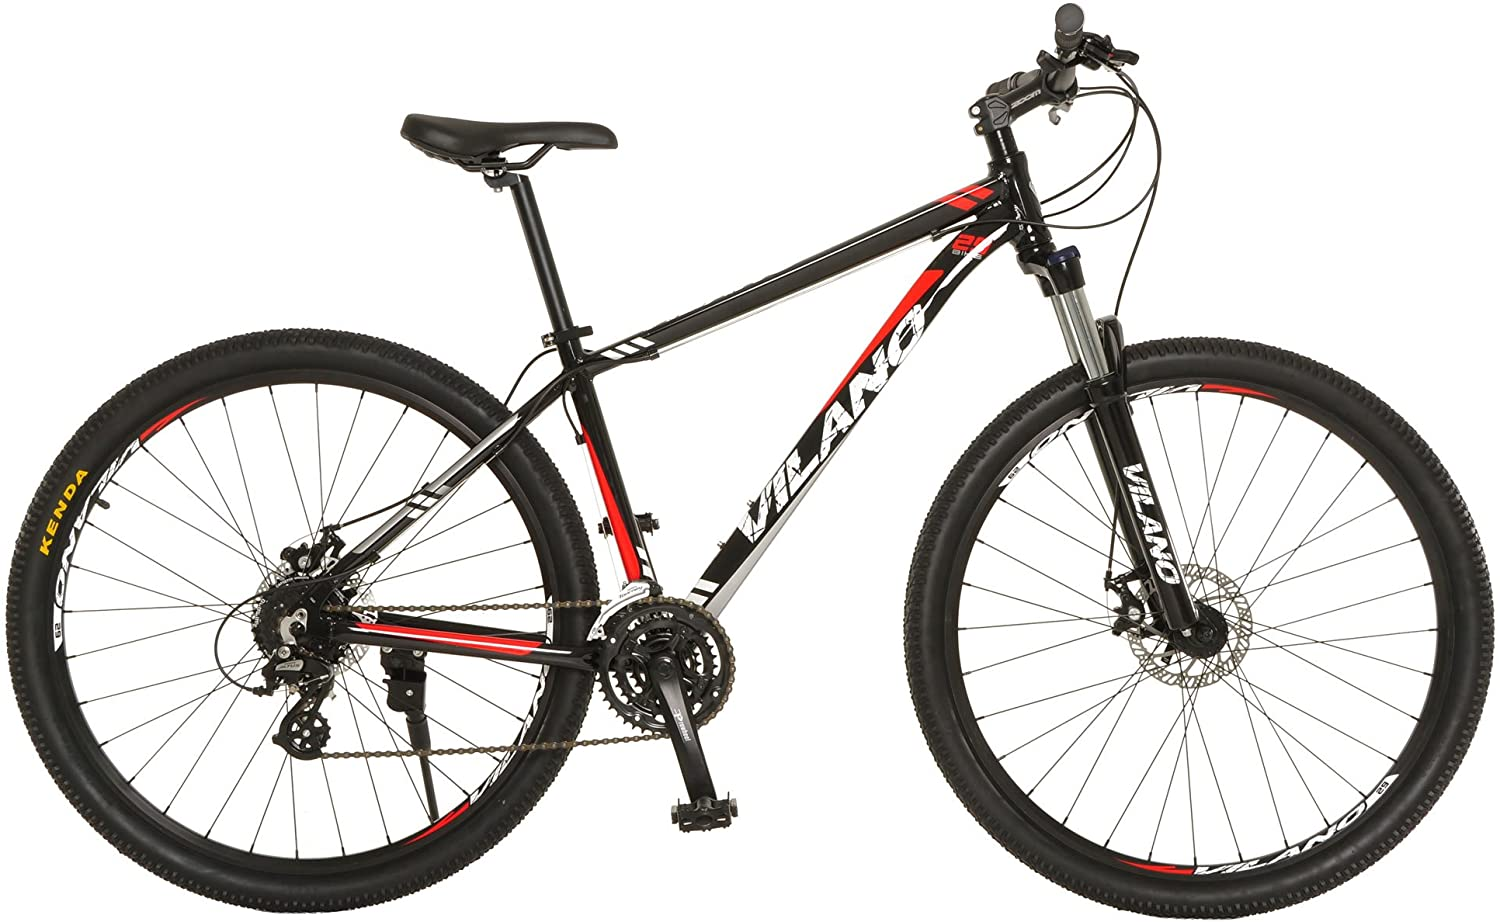 81eFyqYiXaL. AC SL1500 15 Best Cheap Mountain Bikes - Compare Prices & Features